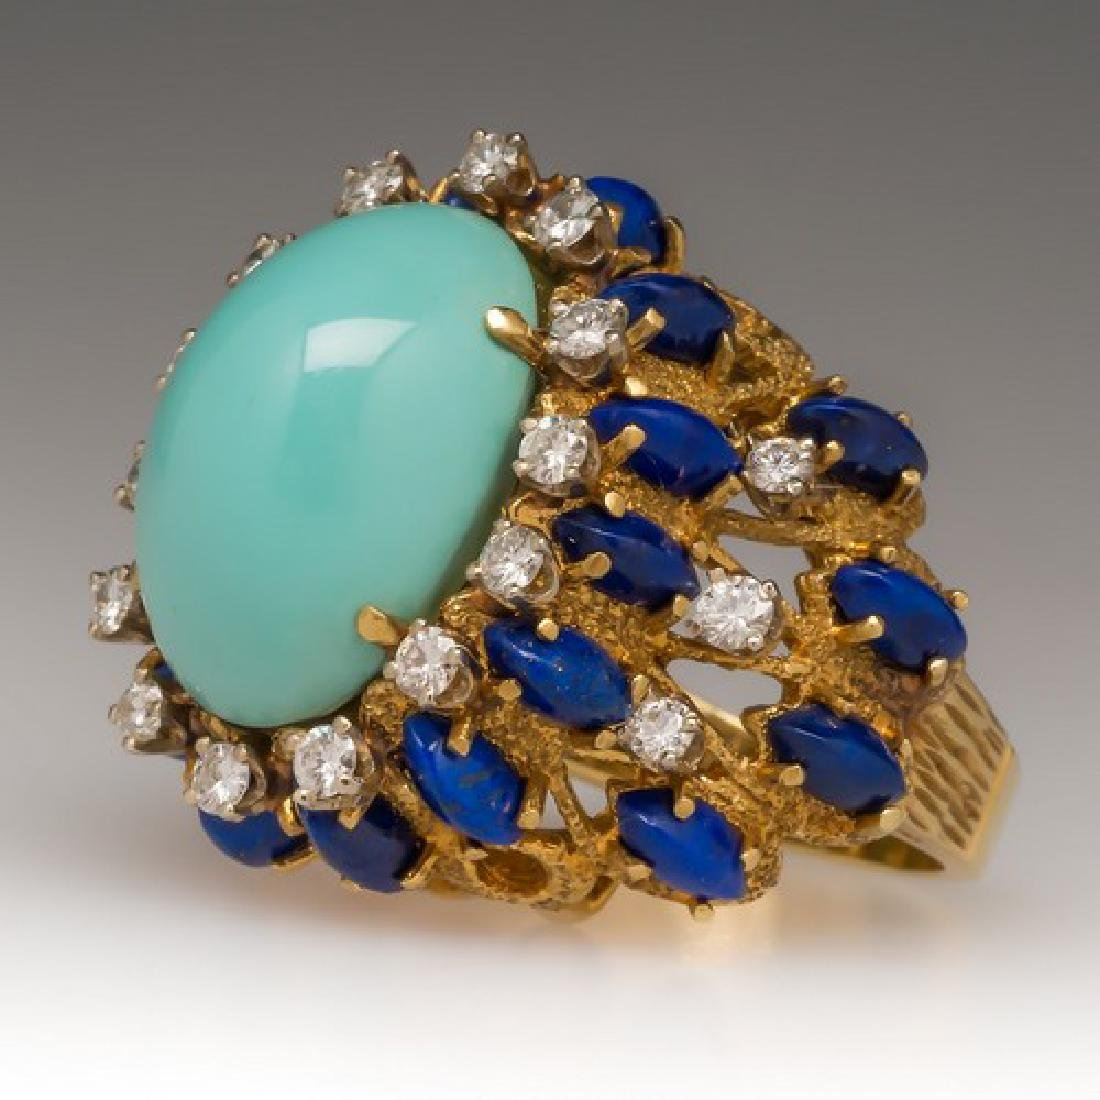 FINE 18K GOLD NATURAL PERSIAN TURQUOISE COCKTAIL RING